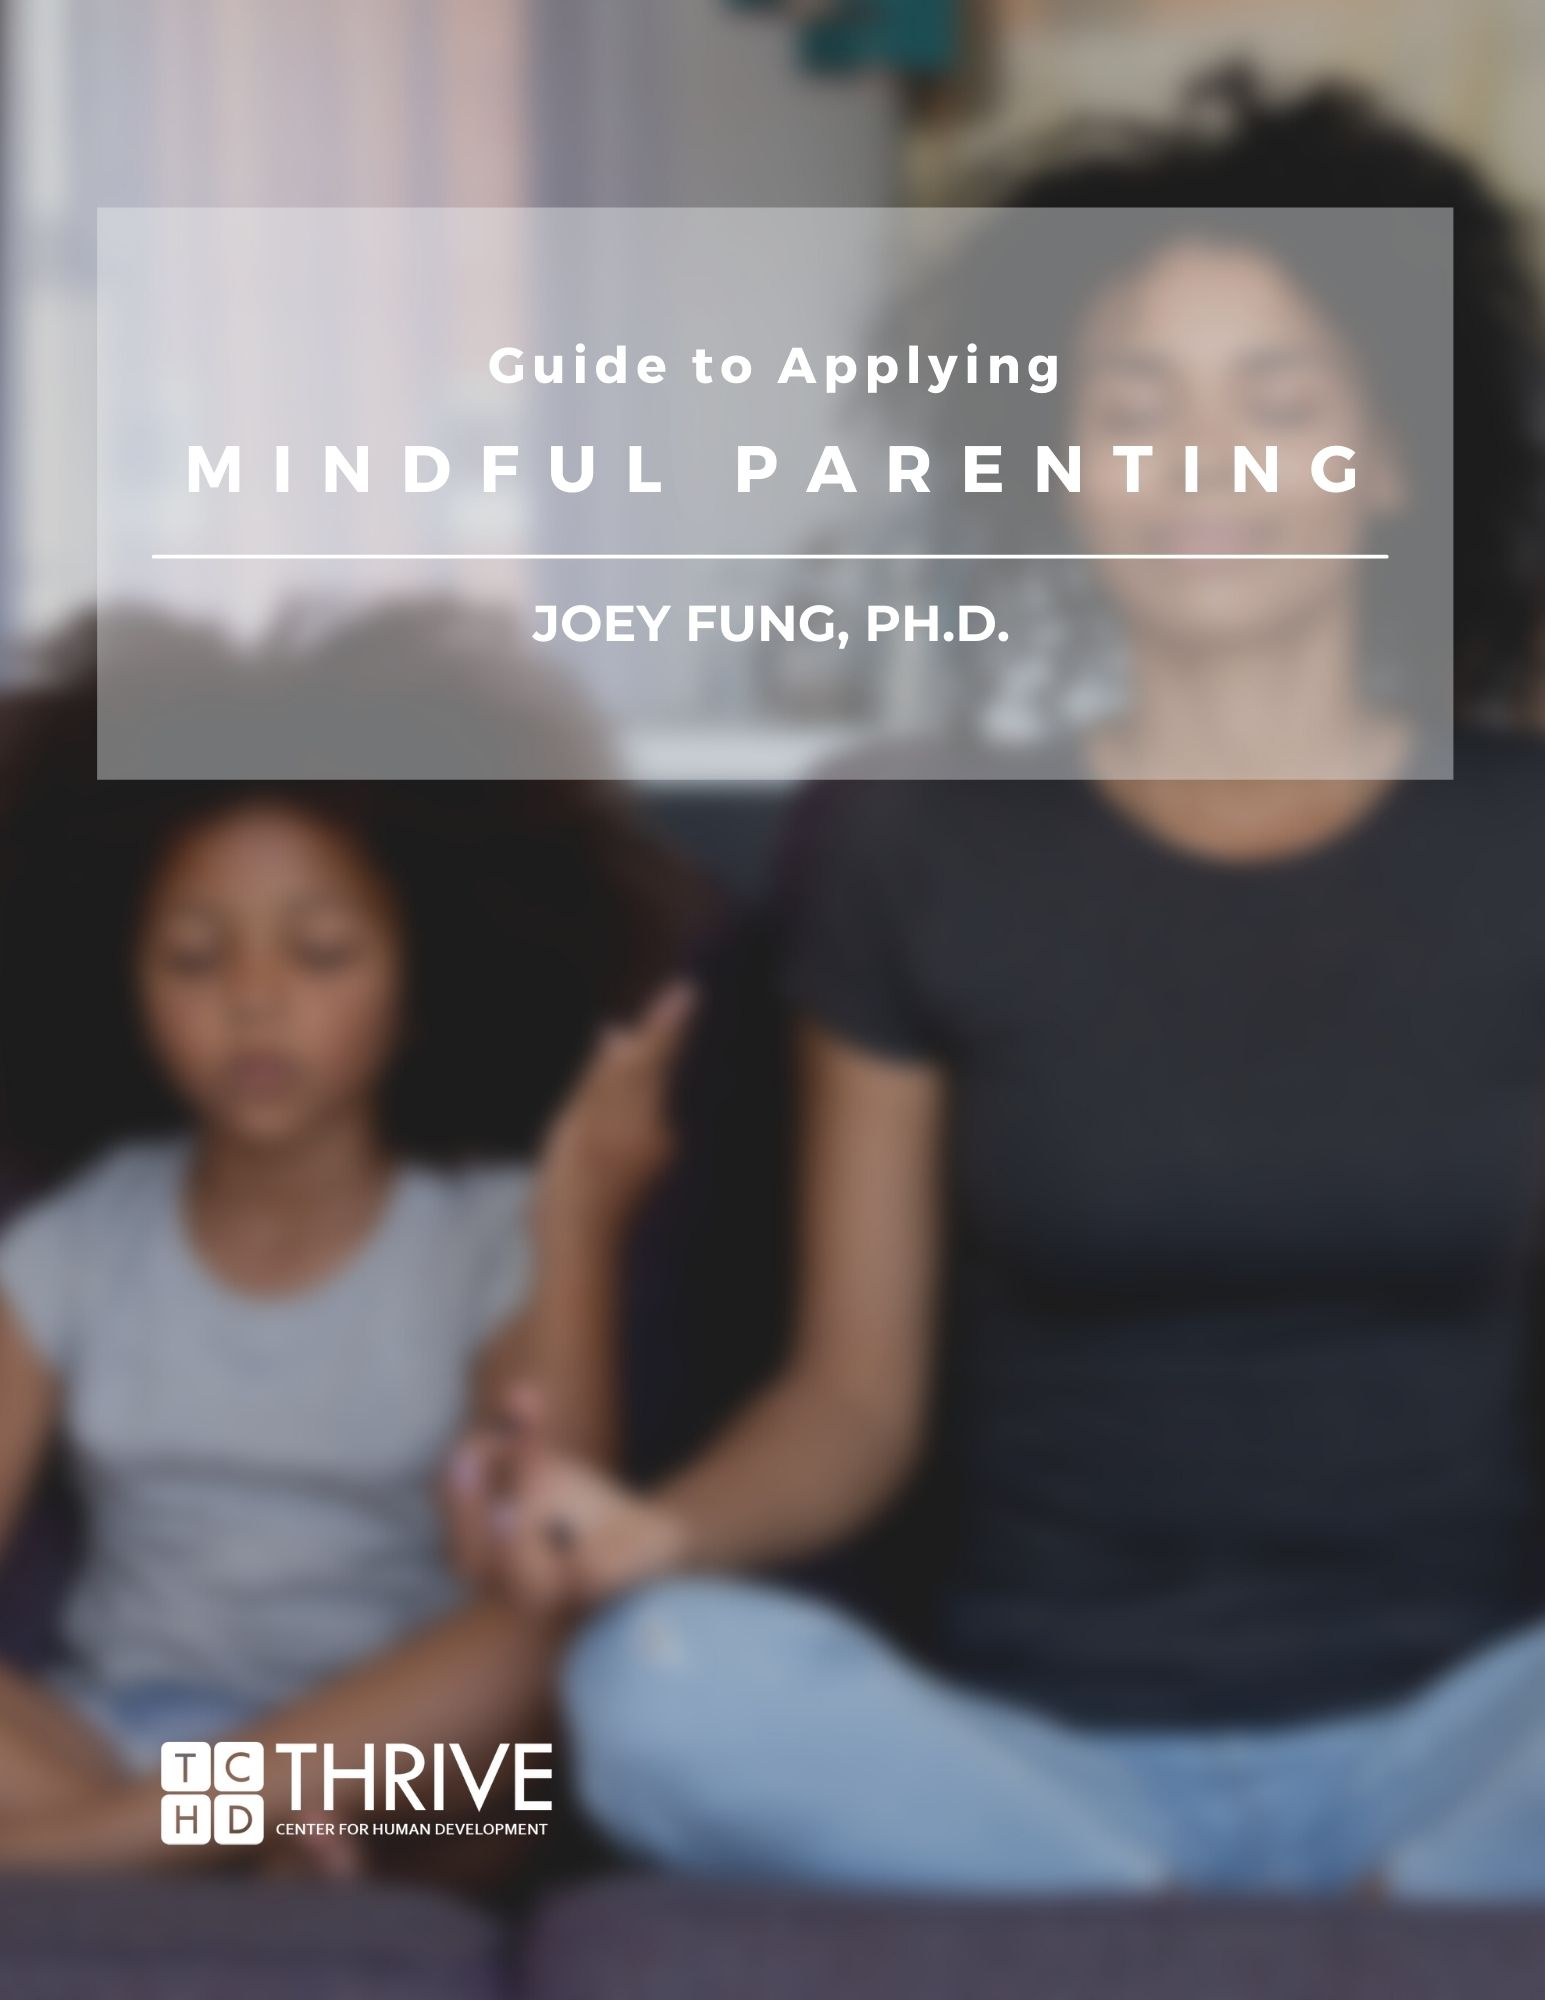 Guide to Applying Mindful Parenting cover